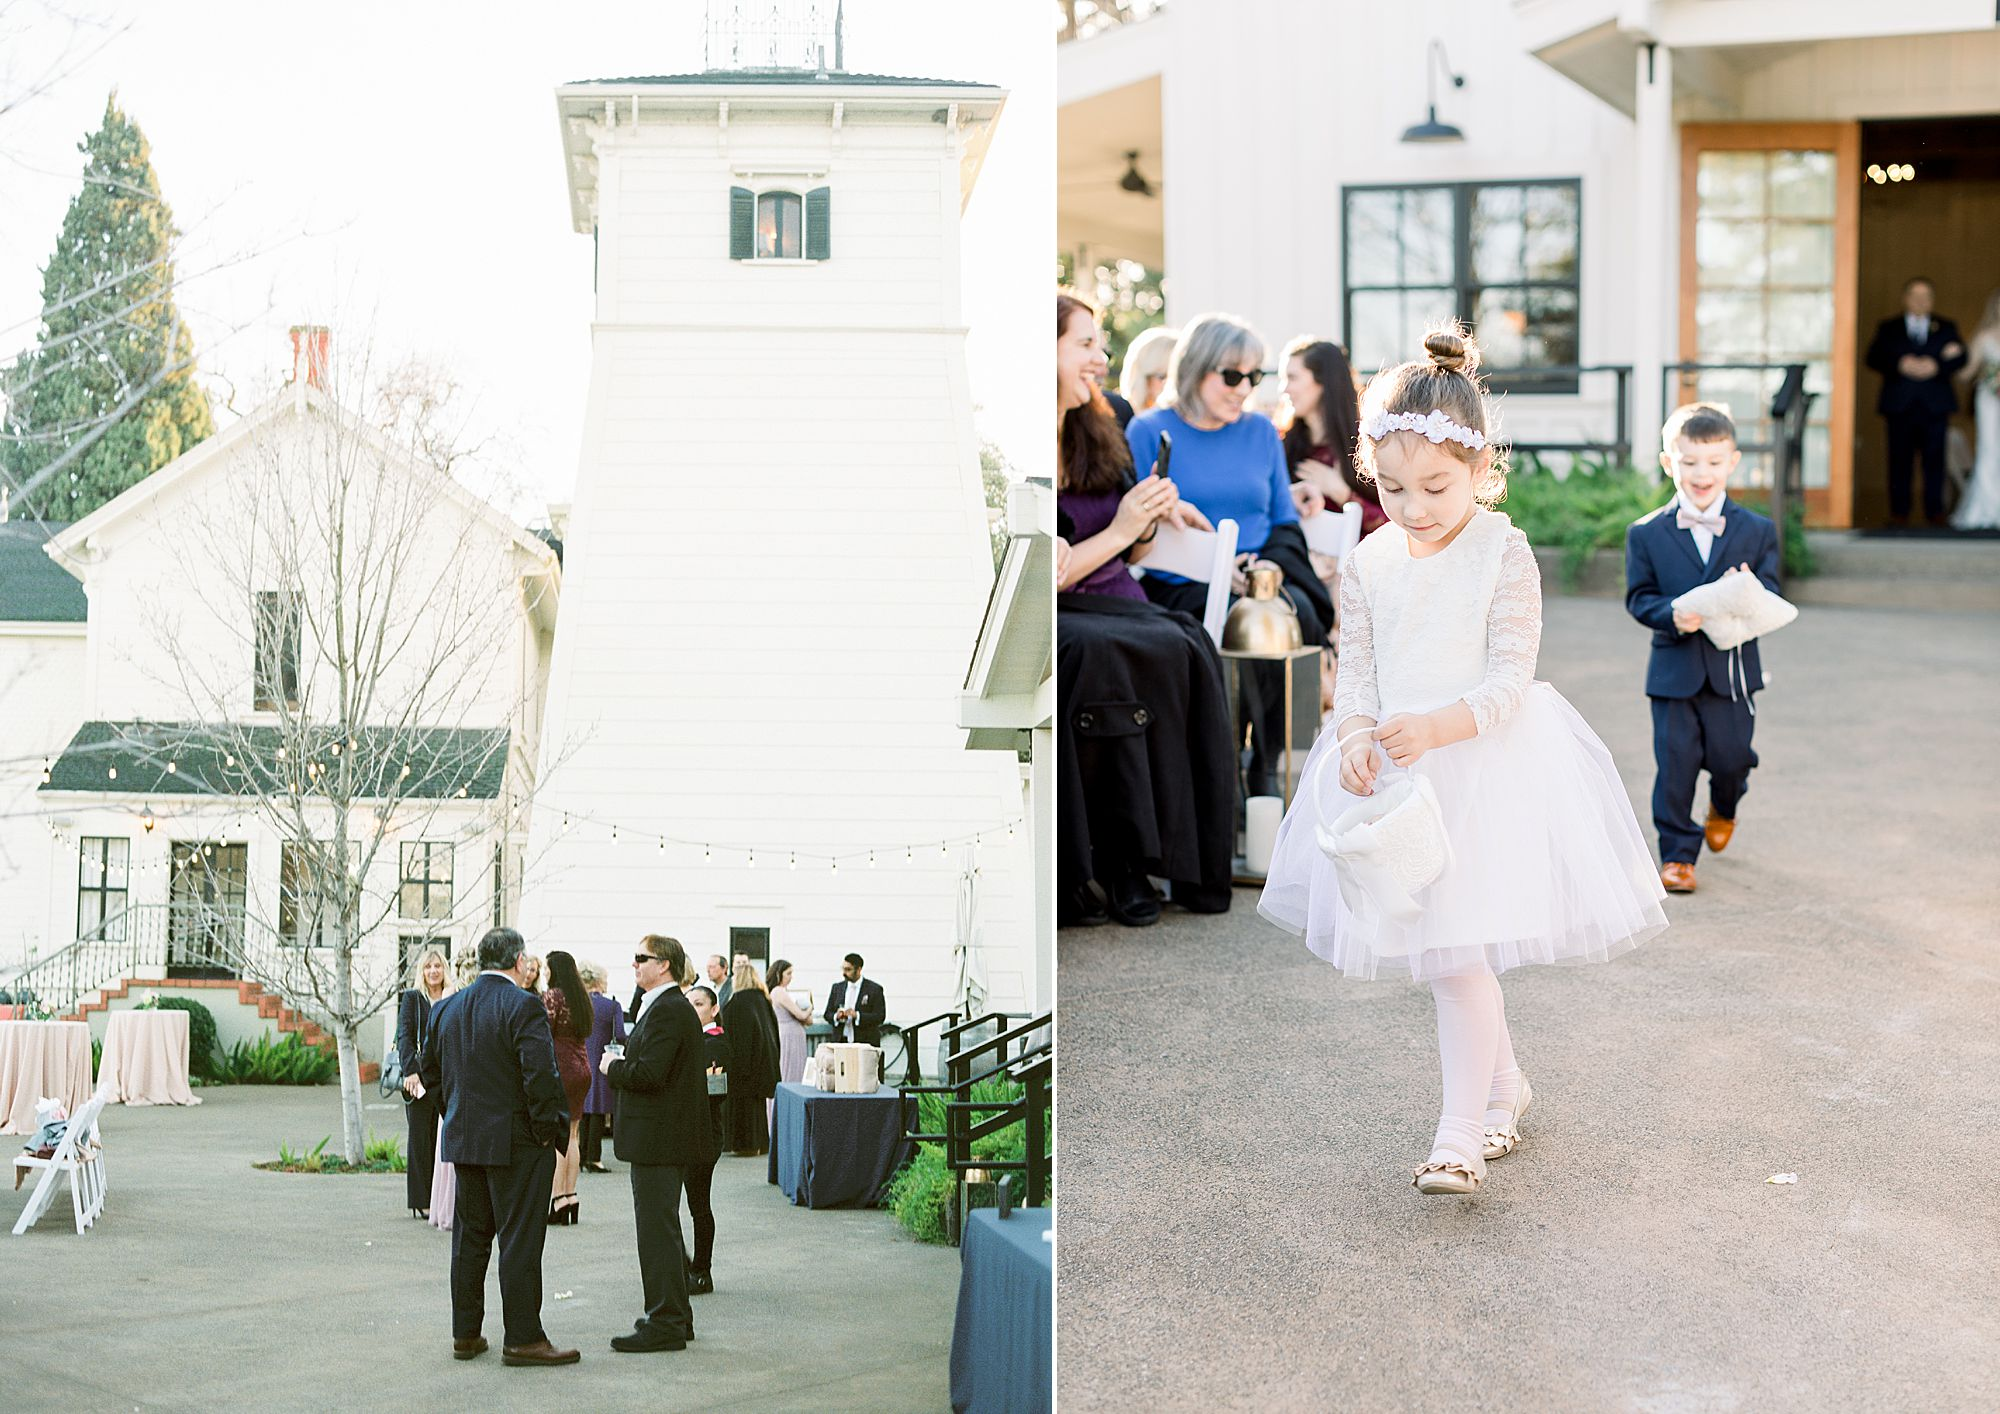 Inn at Park Winters Wedding - Lindsay and Shane - Ashley Baumgartner - Park Winters Wedding Photographer - Sacramento Wedding Photographer_0050.jpg